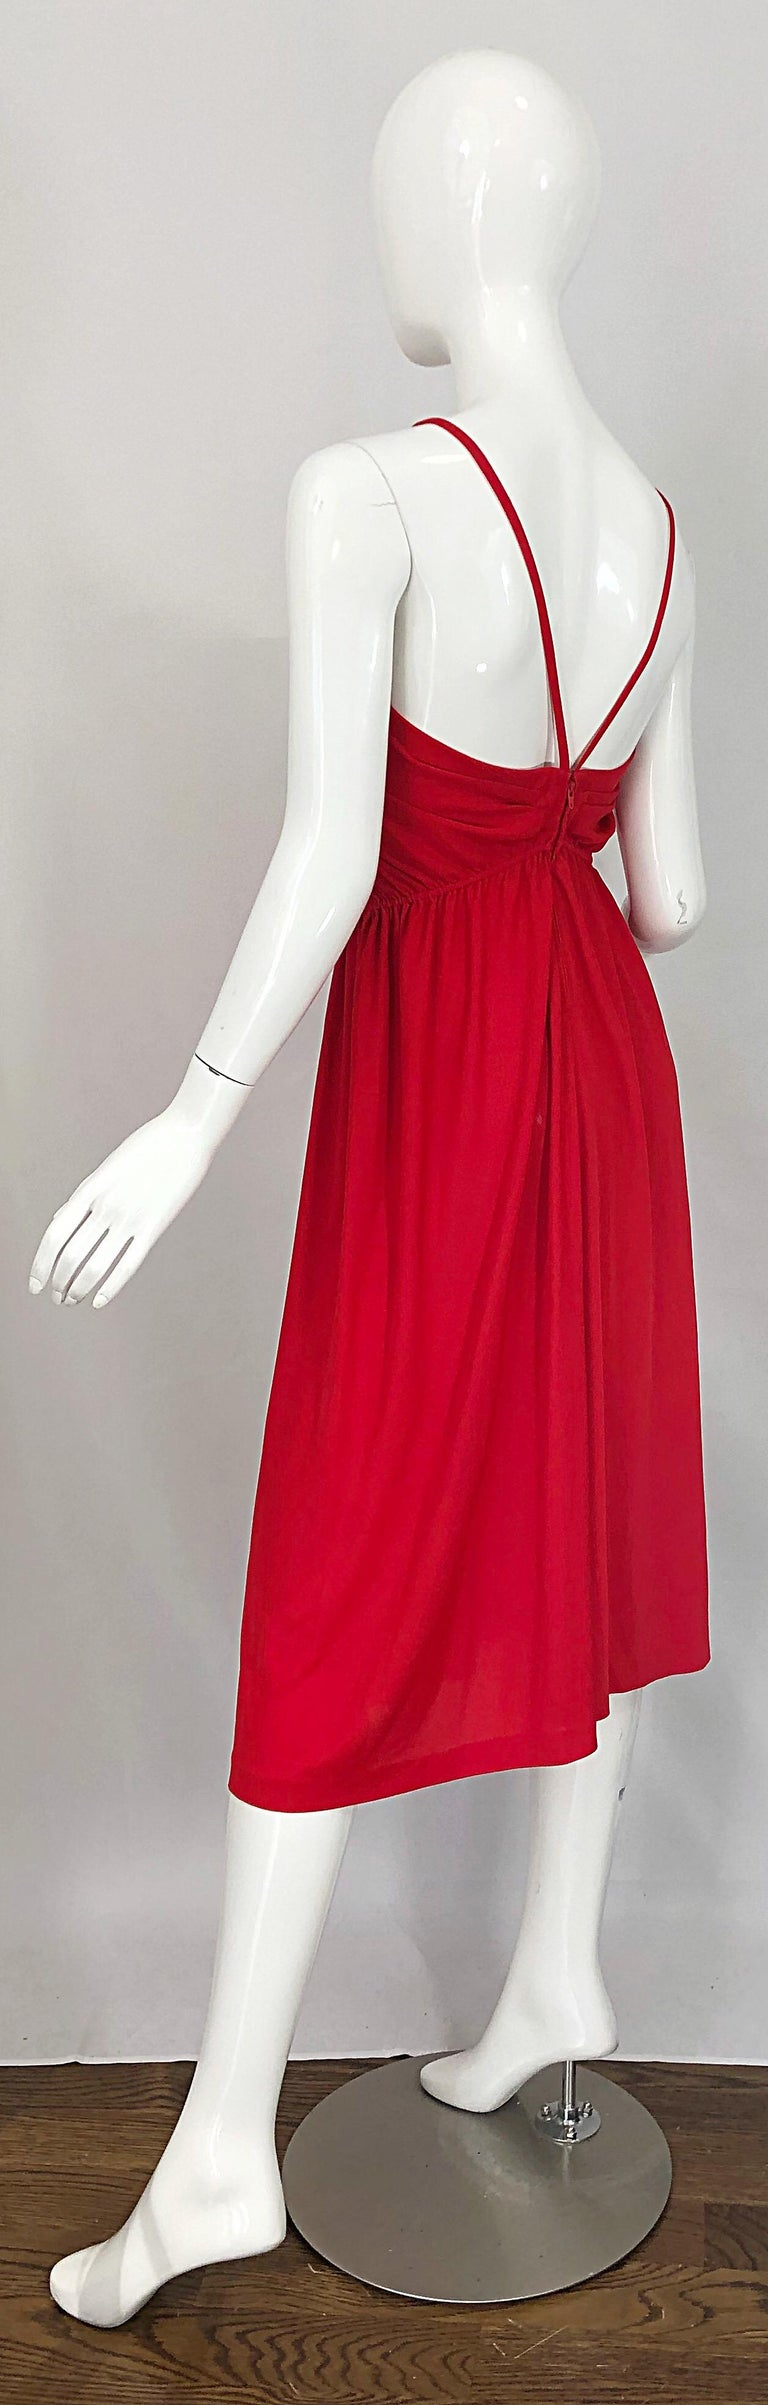 1970s Loris Azzaro Crimson Red Silk Jersey Grecian Inspired Vintage 70s Dress For Sale 9